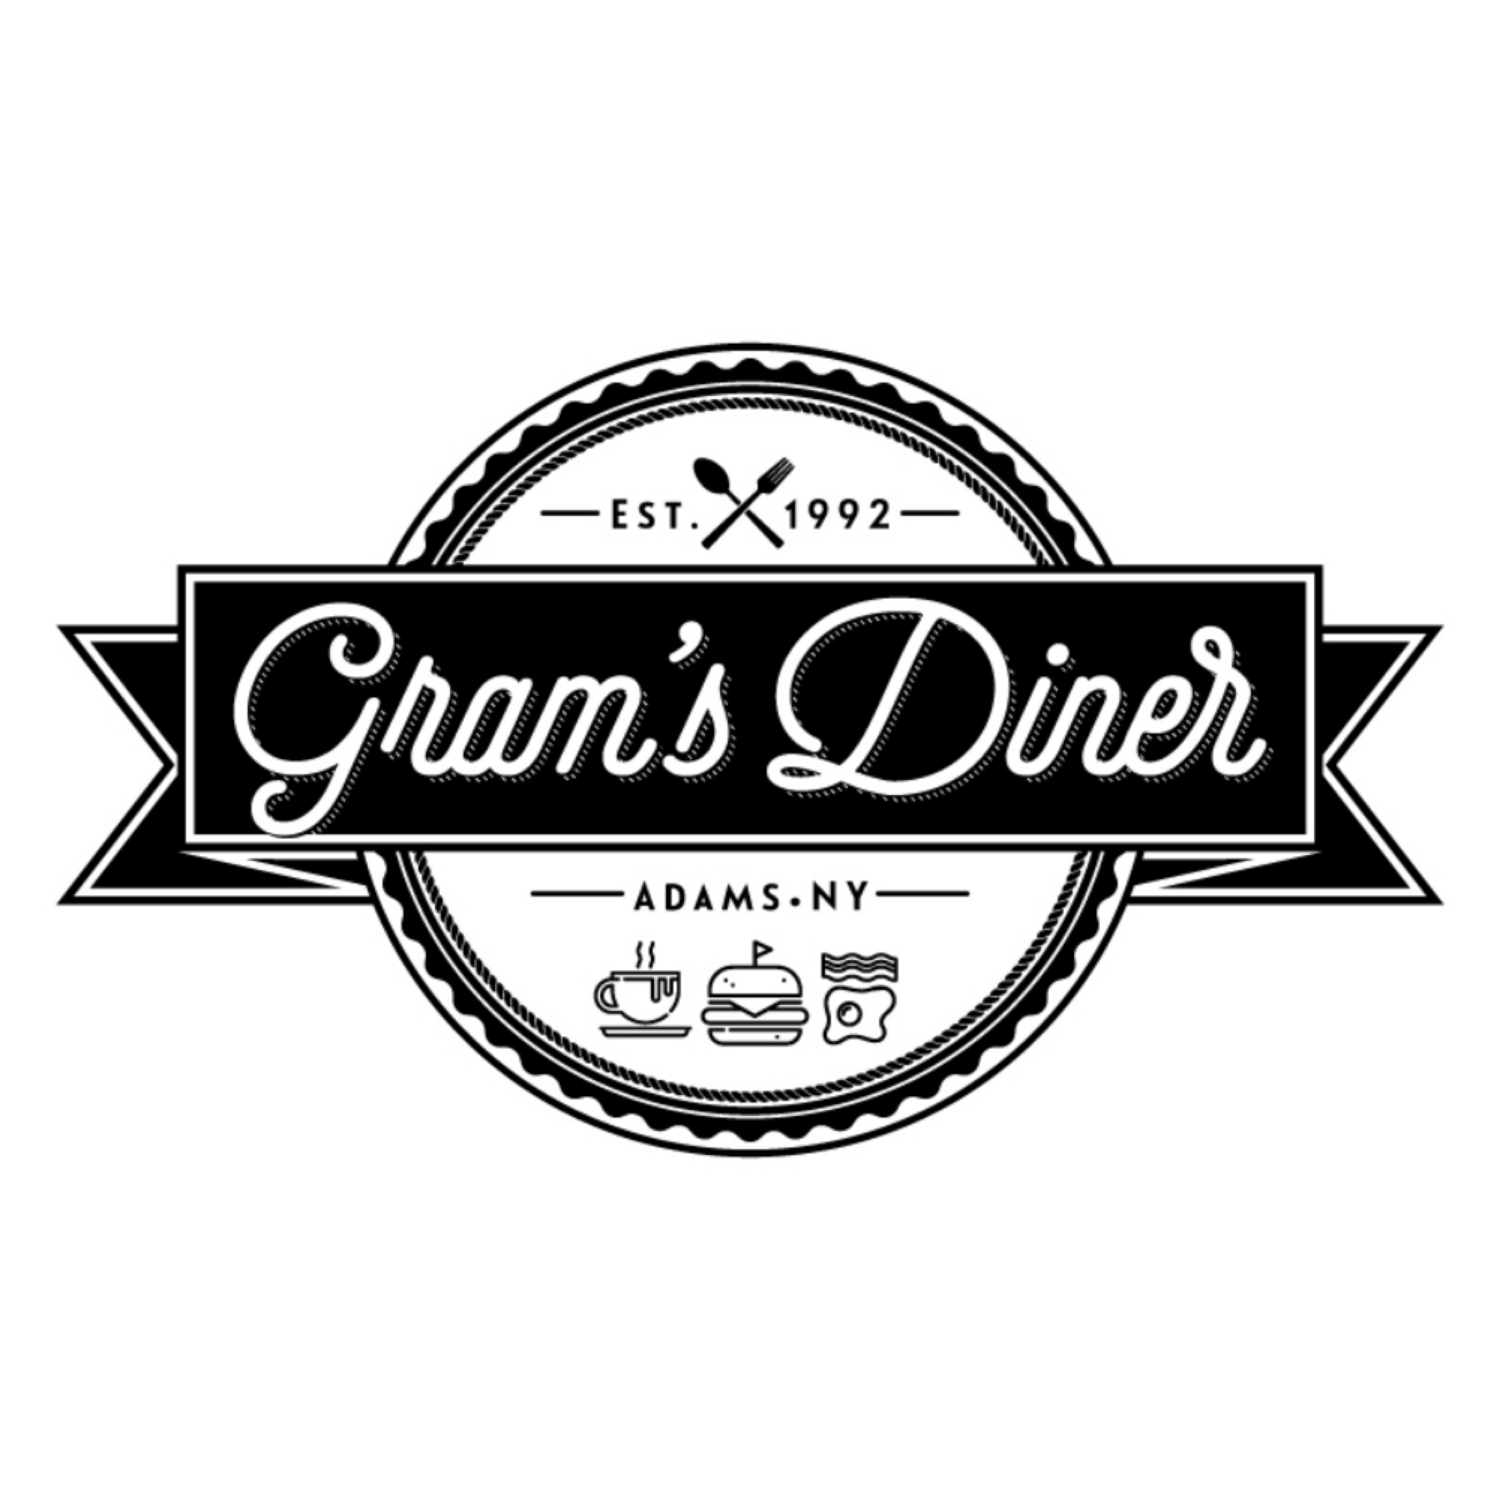 Gram's Diner   Gram's Diner is a hometown eatery in downtown Adams, New York. Located right on Main Street, Gram's serves the best breakfasts, lunches and dinners in Southern Jefferson County at family-friendly prices.